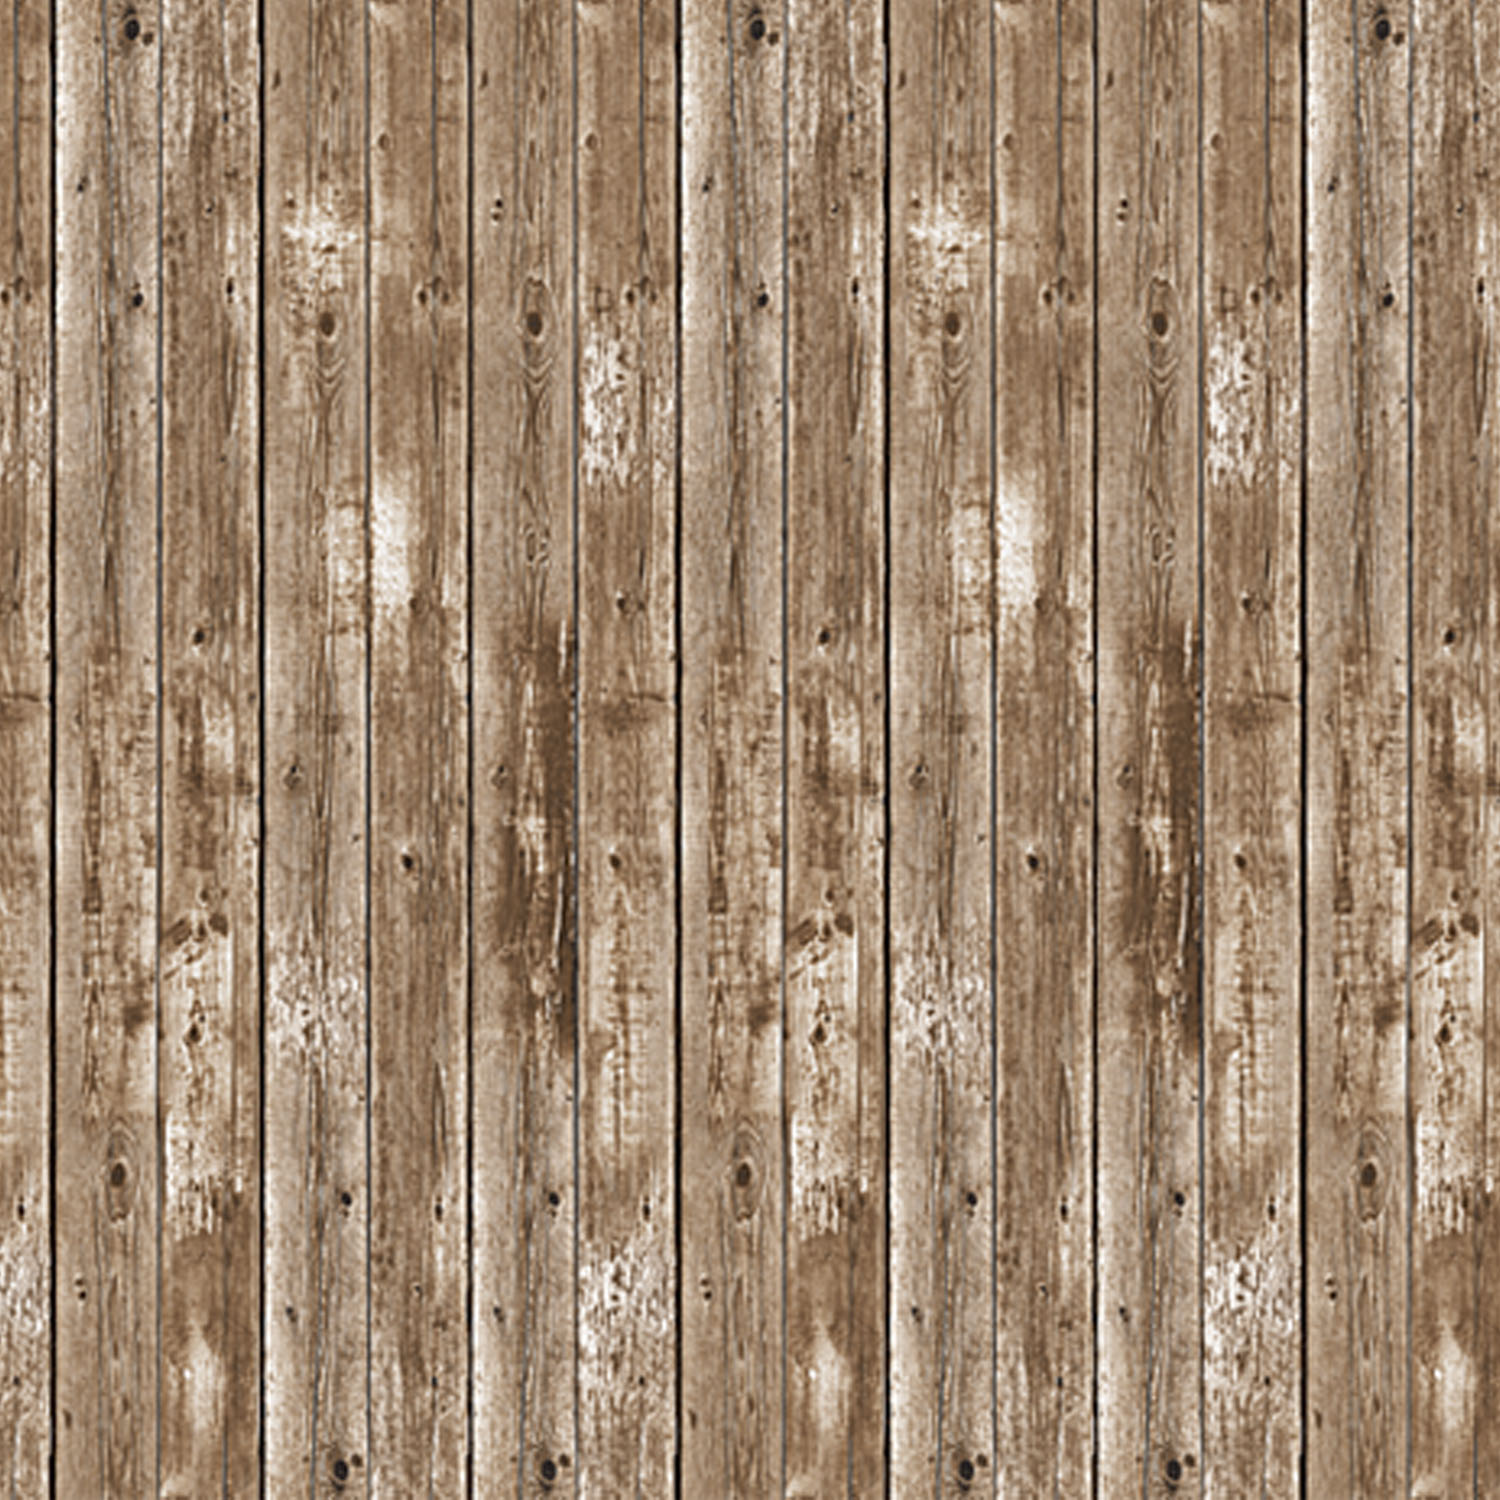 Barn Siding Backdrop (Pack of 6) Barn Siding Backdrop, western, decoration, new years eve, wholesale, inexpensive, bulk